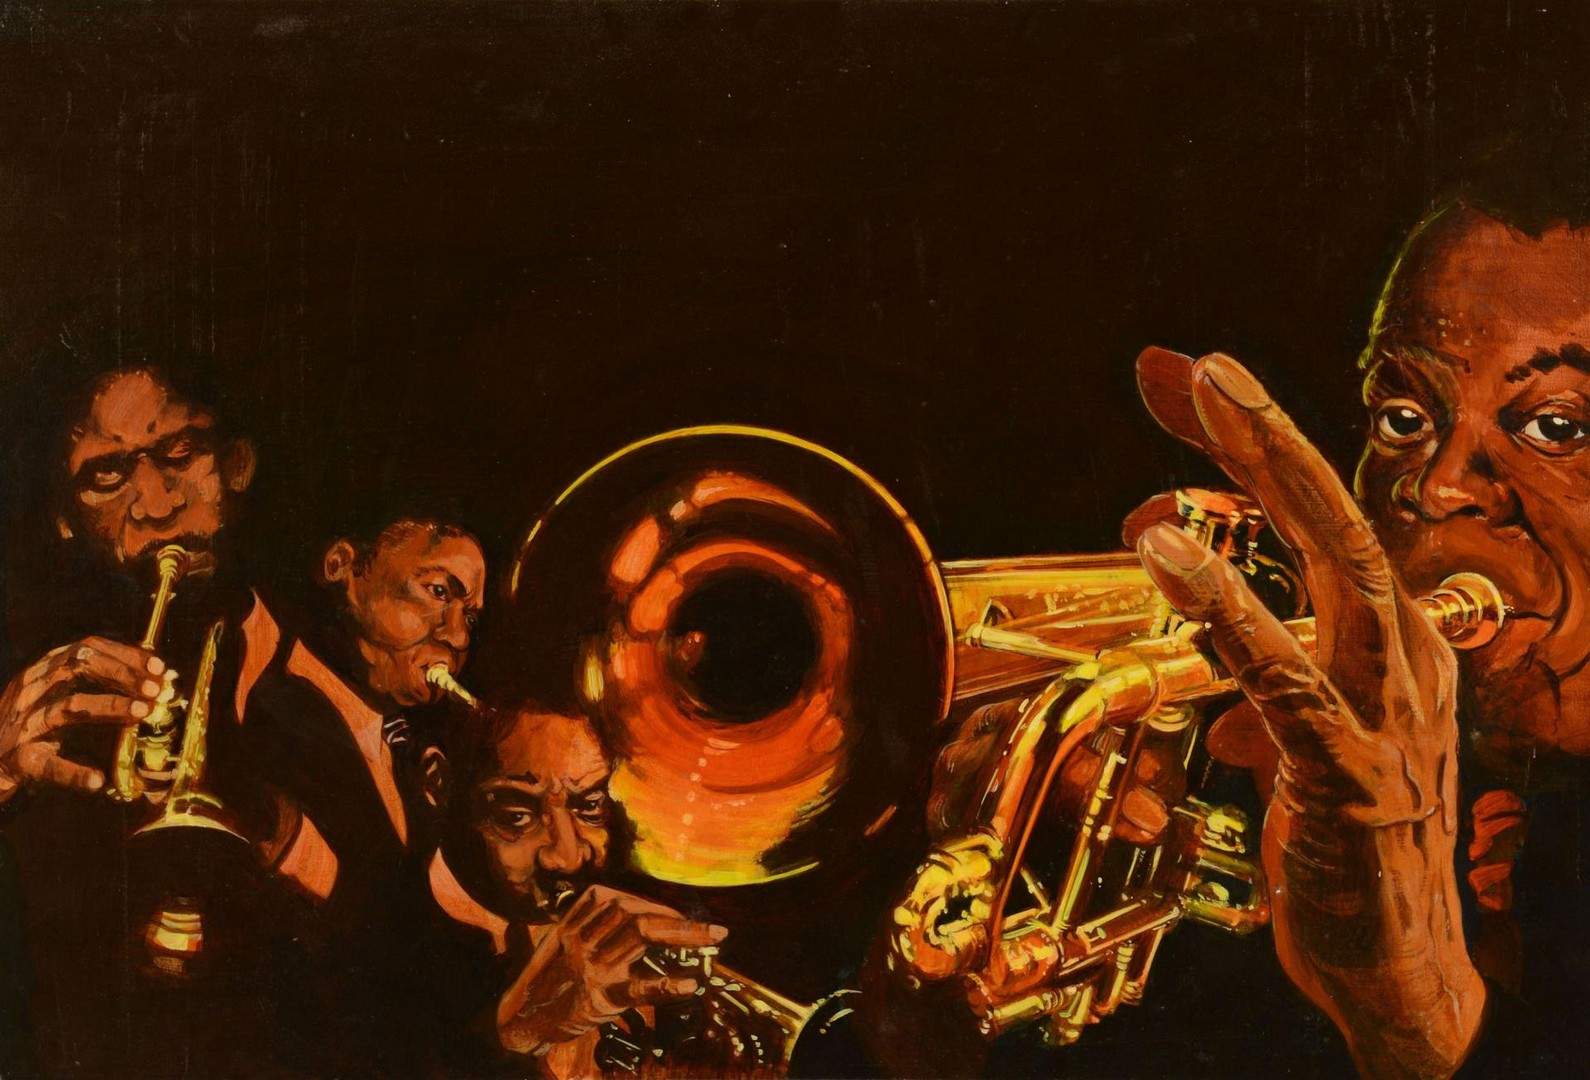 Lot 3383265: 4 Jazz Related Portraits by James Caulfield